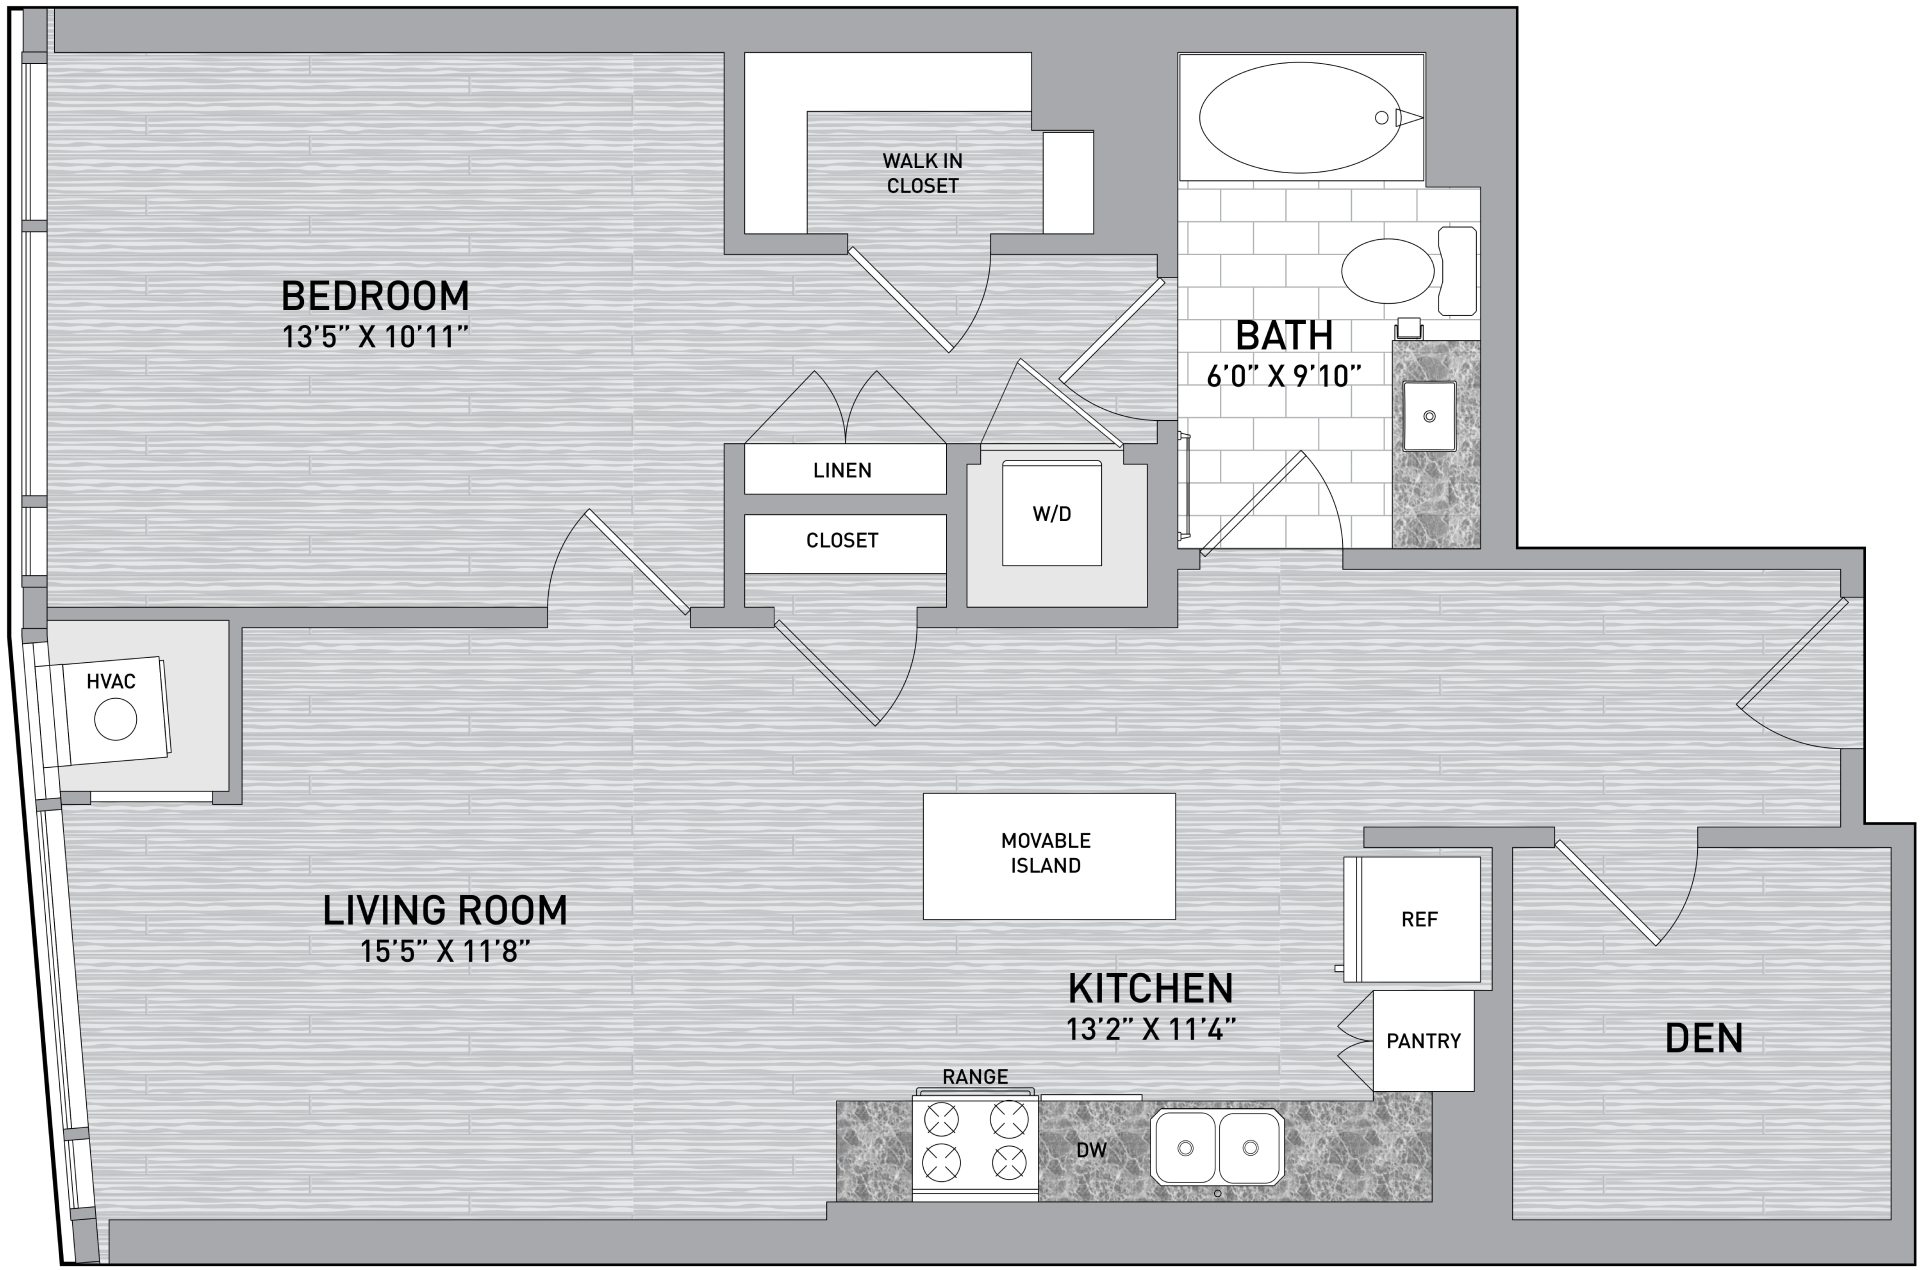 floorplan image of unit id 928